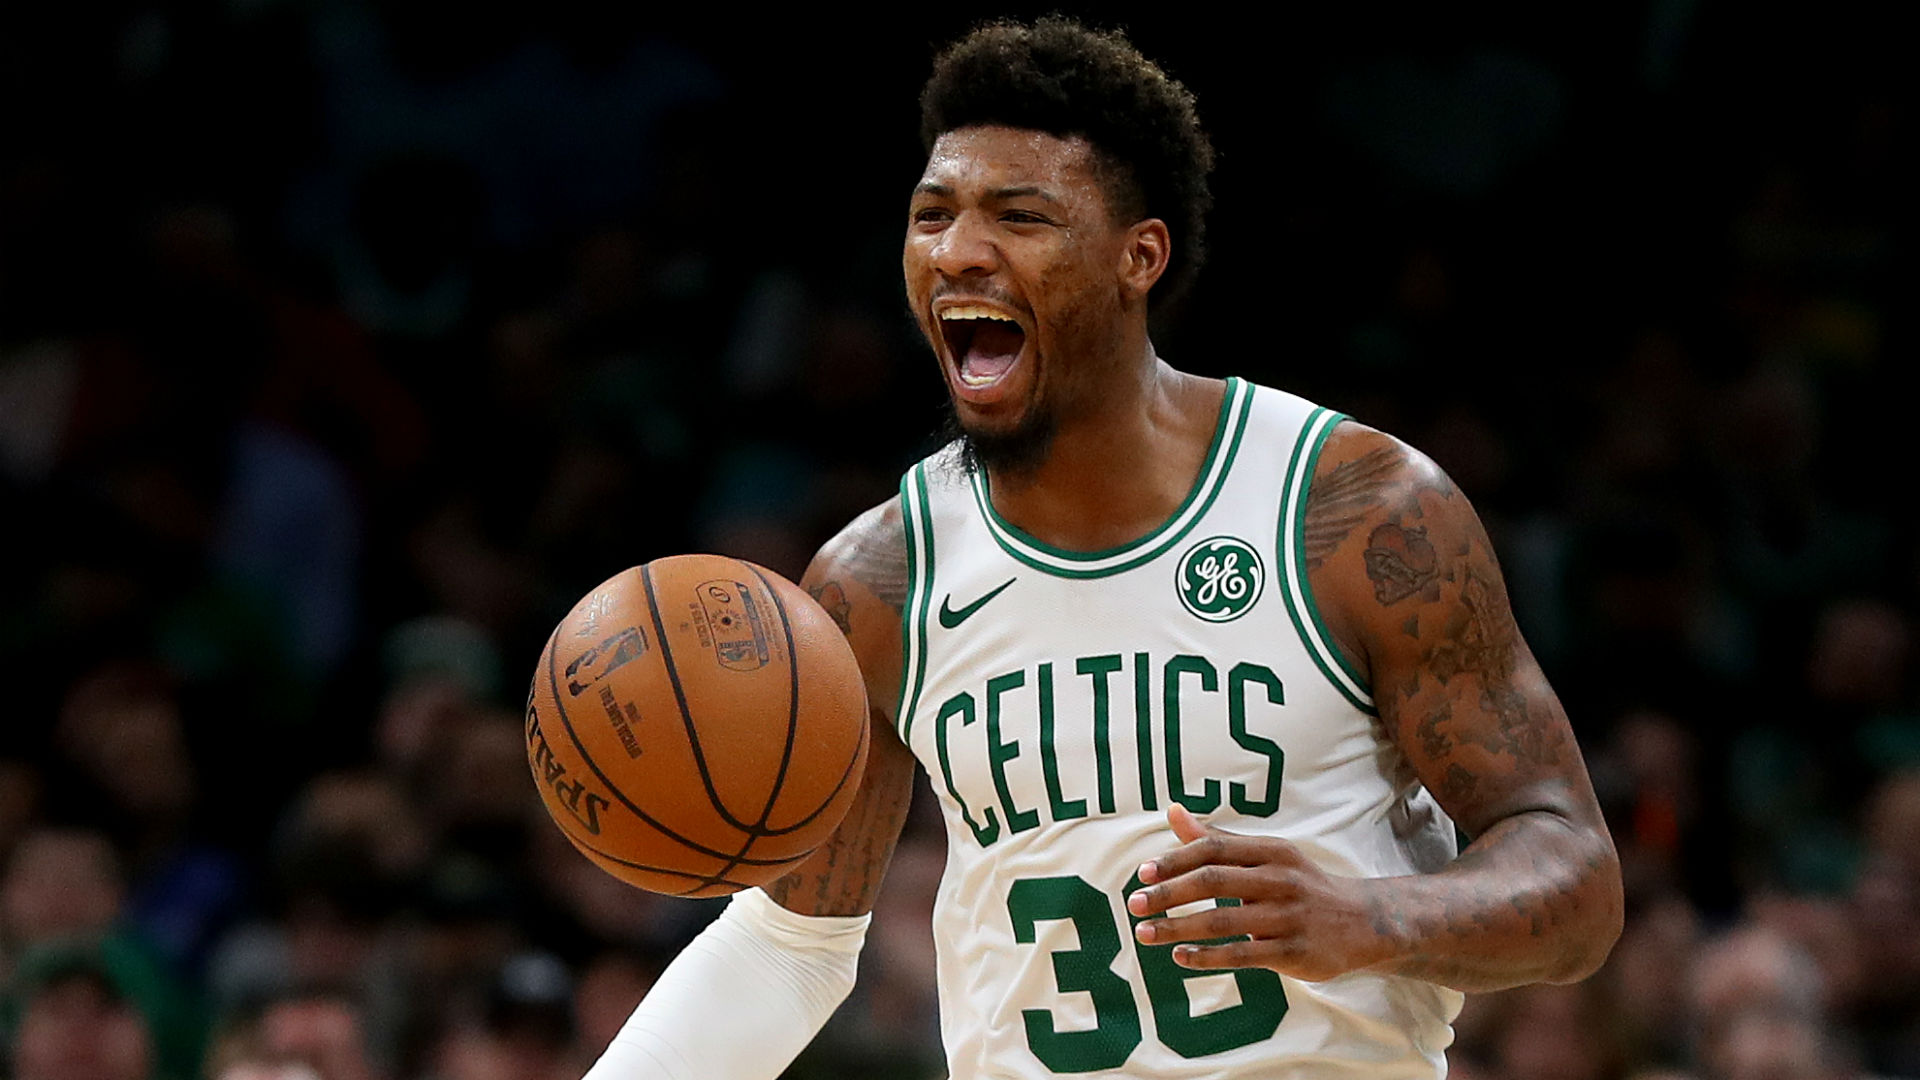 Marcus Smart Out 4-6 Weeks With Partially Torn Oblique Muscle